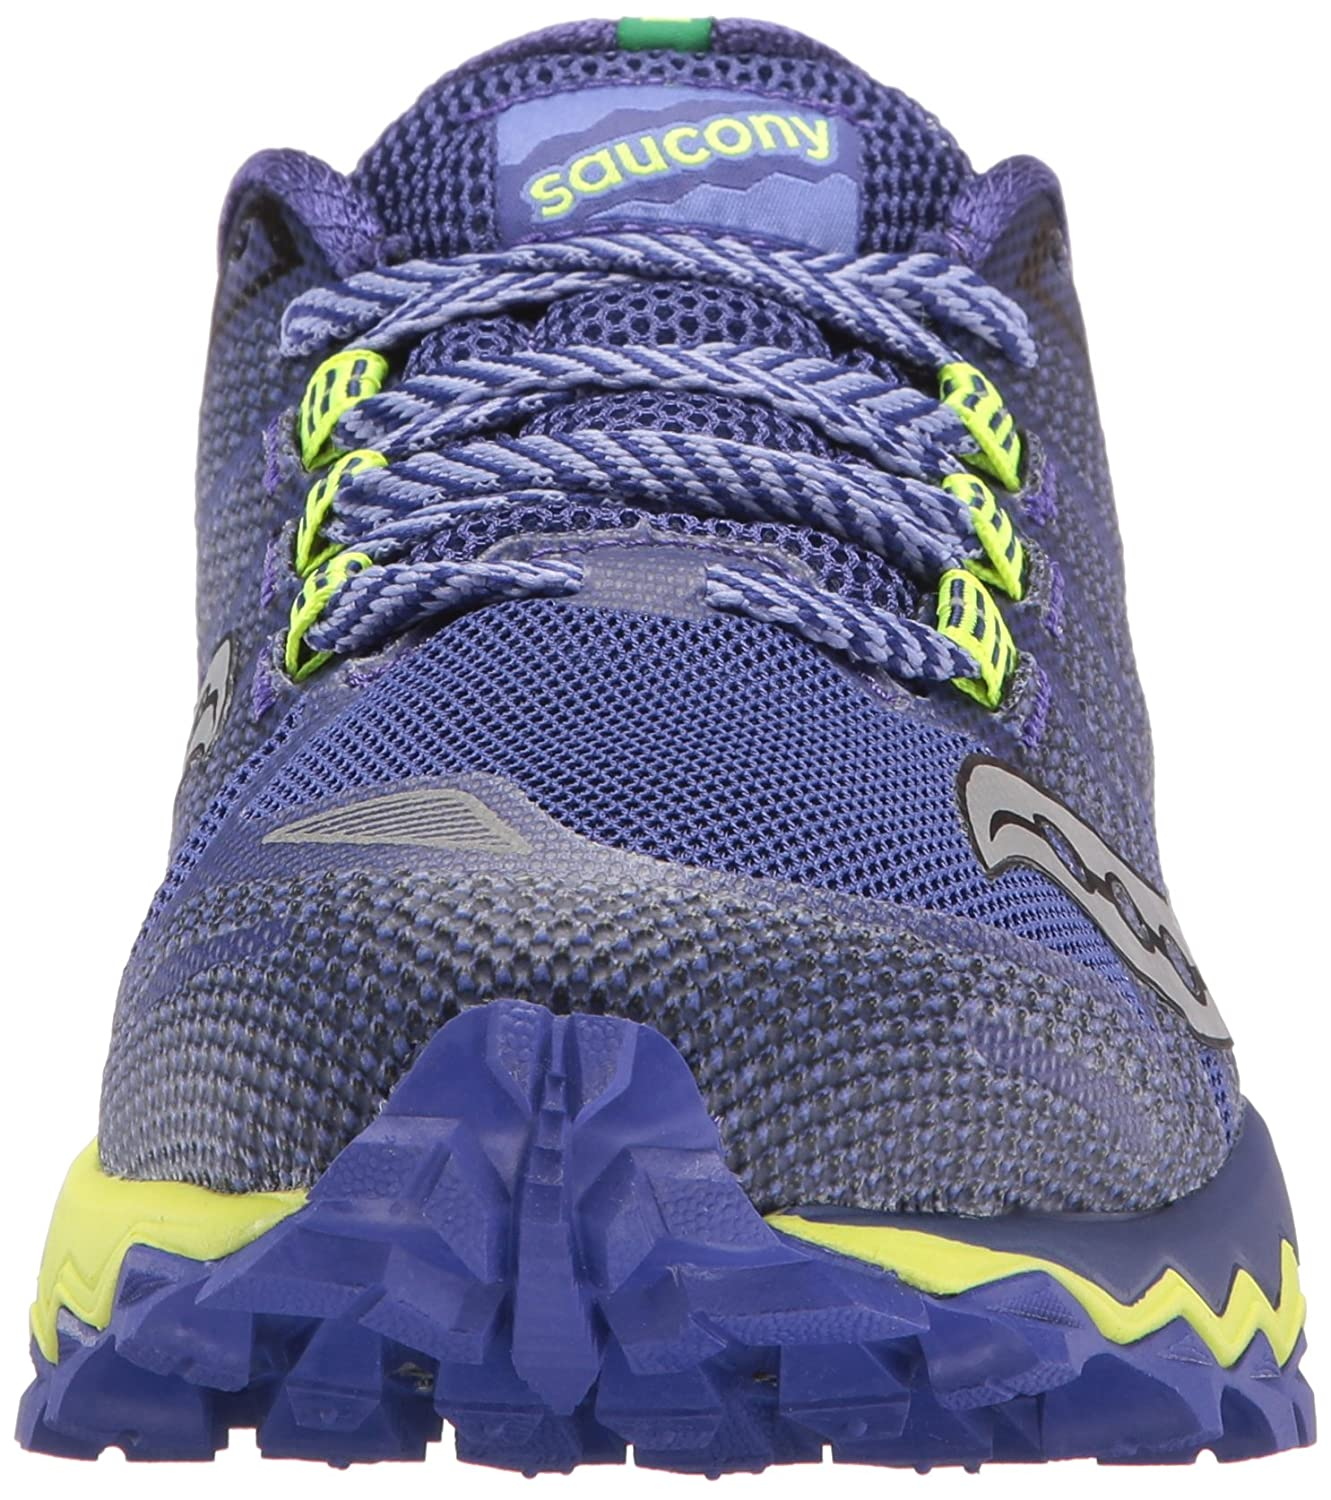 Saucony Women's Peregrine 7 Trail Running Shoe B01N5I5S7O 8.5 B(M) US|Blue Citron